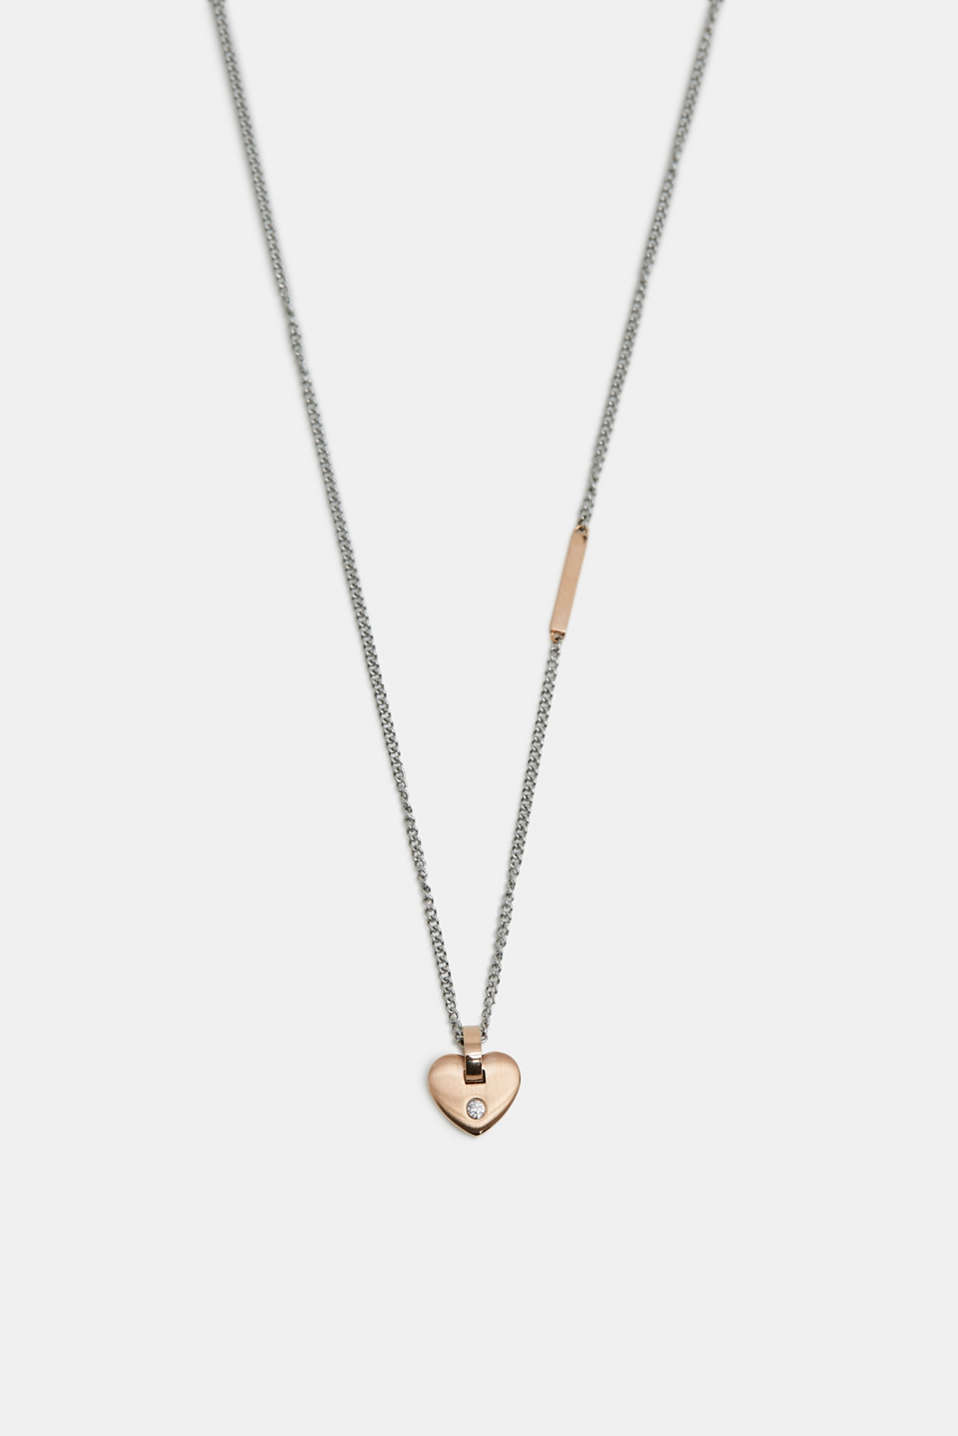 Esprit - Necklace with heart pendant, stainless steel